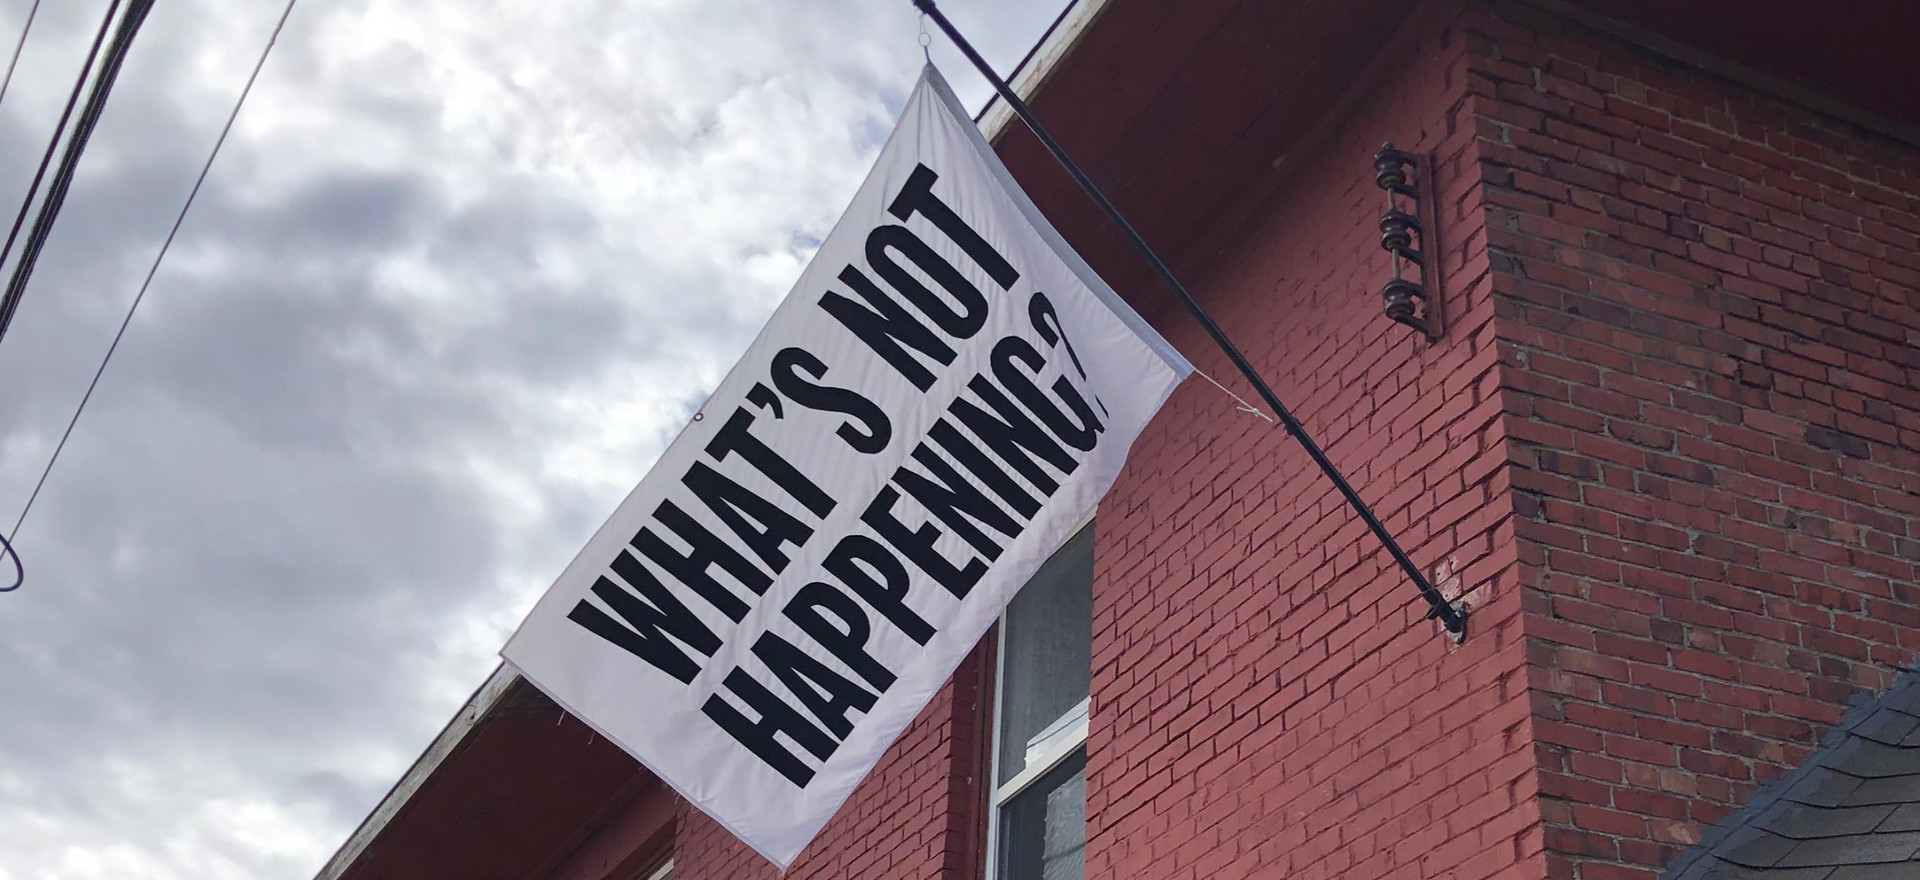 Amy Siegle & Paul Henderson | What's Not Happening?